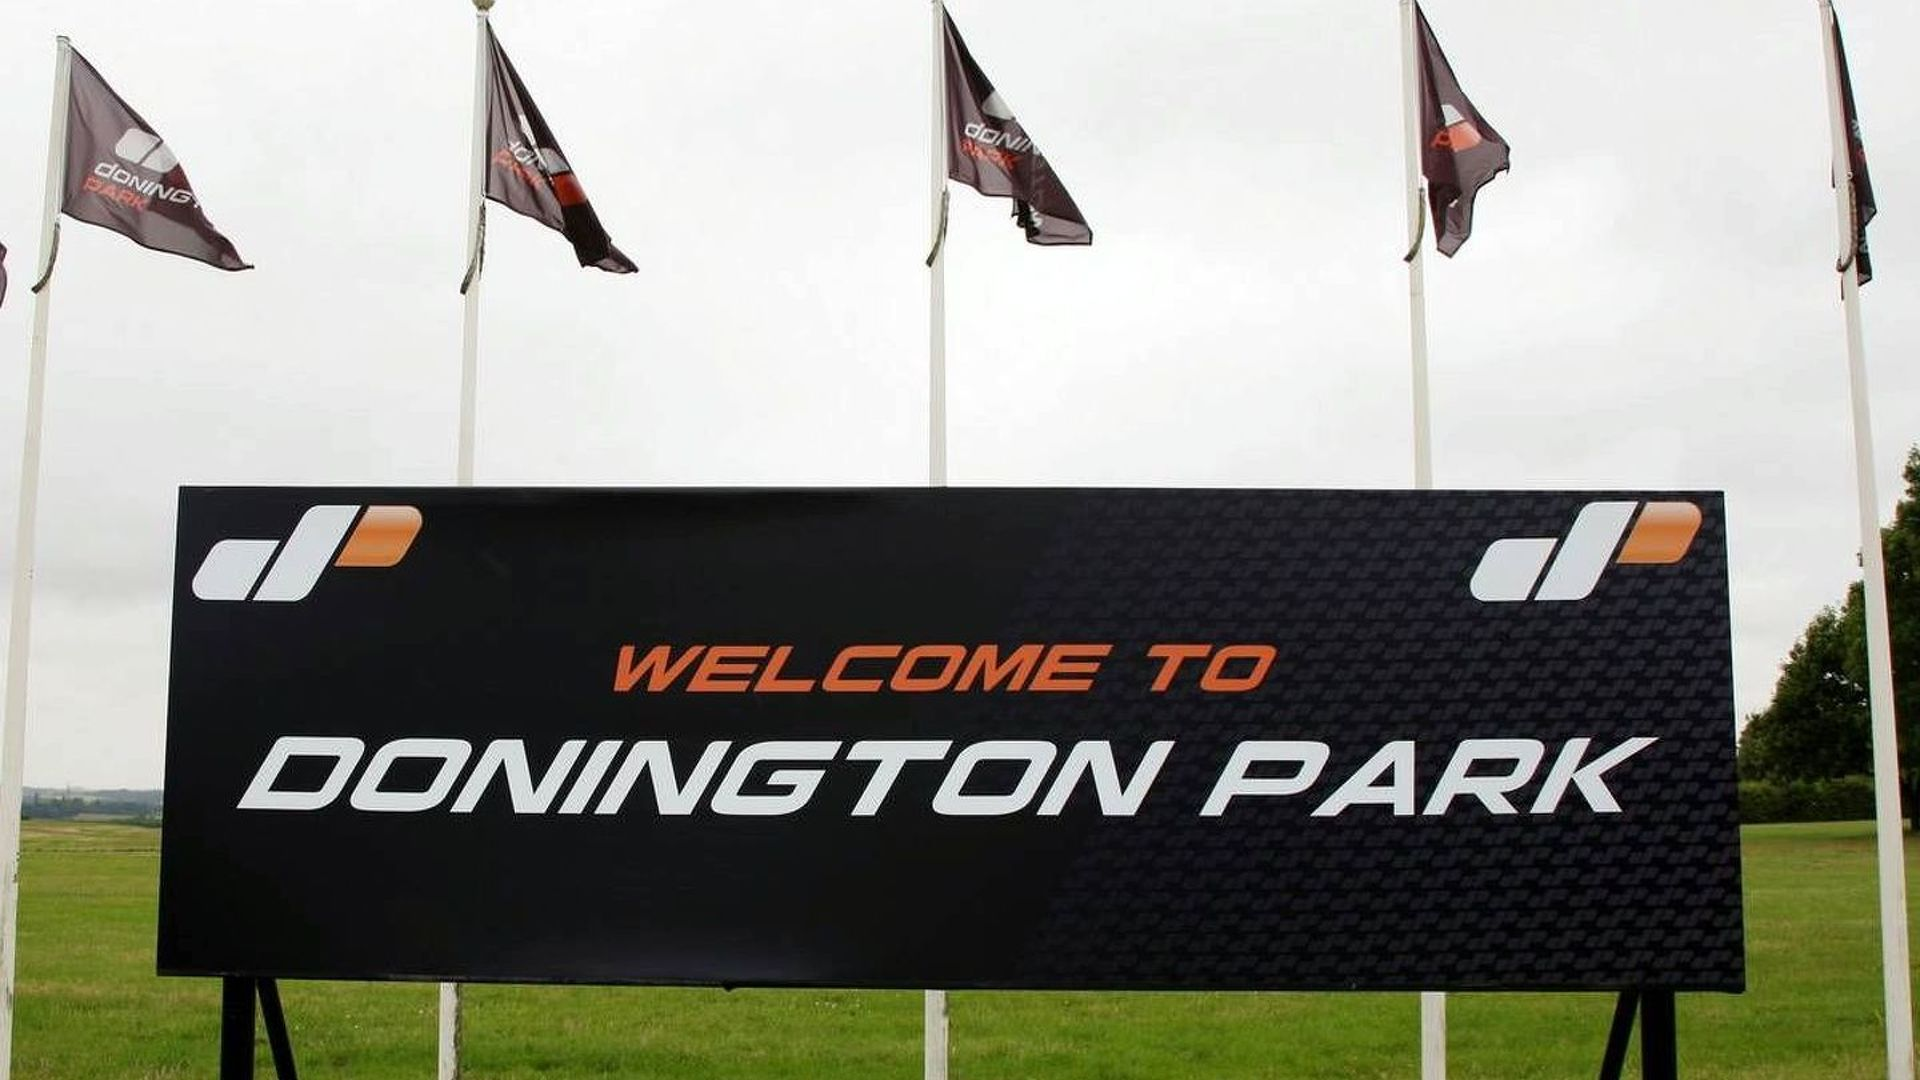 Donington confirms funding scheme failed